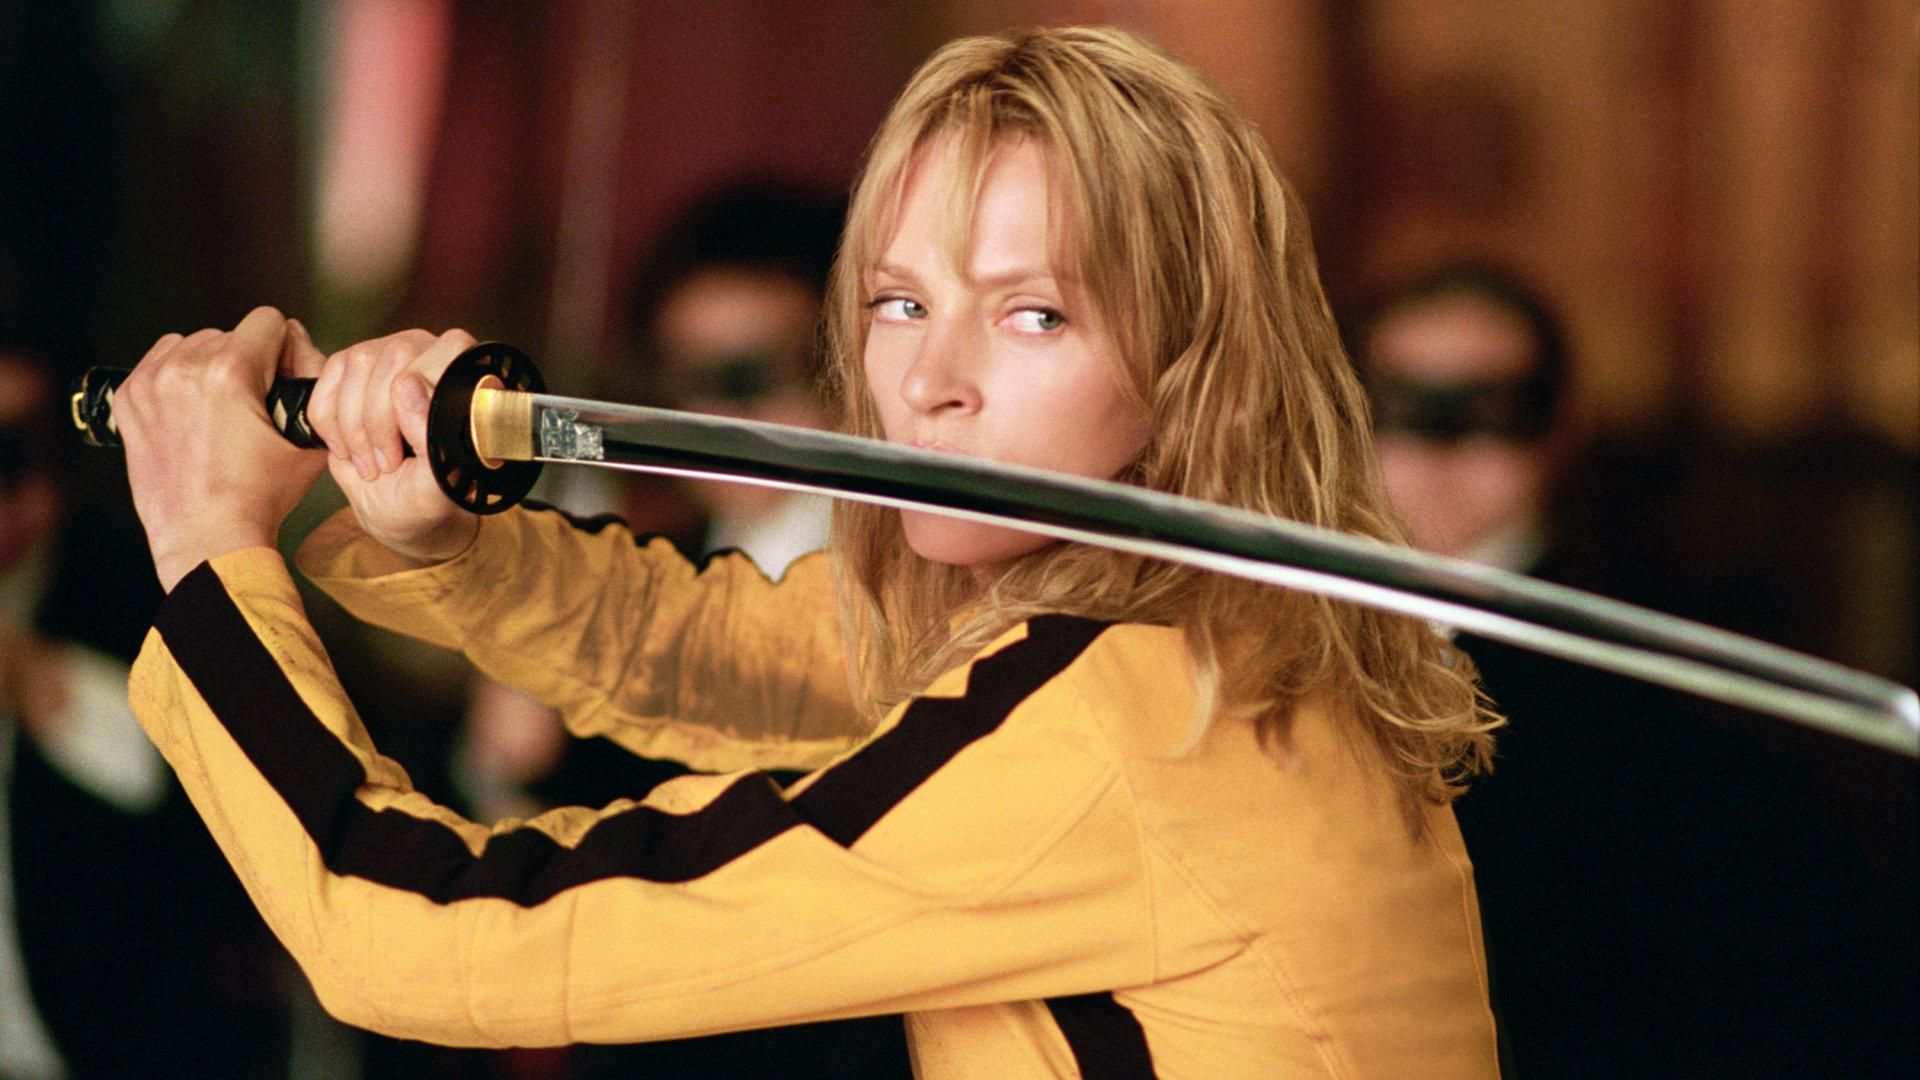 The most dangerous chick of the 2000s.